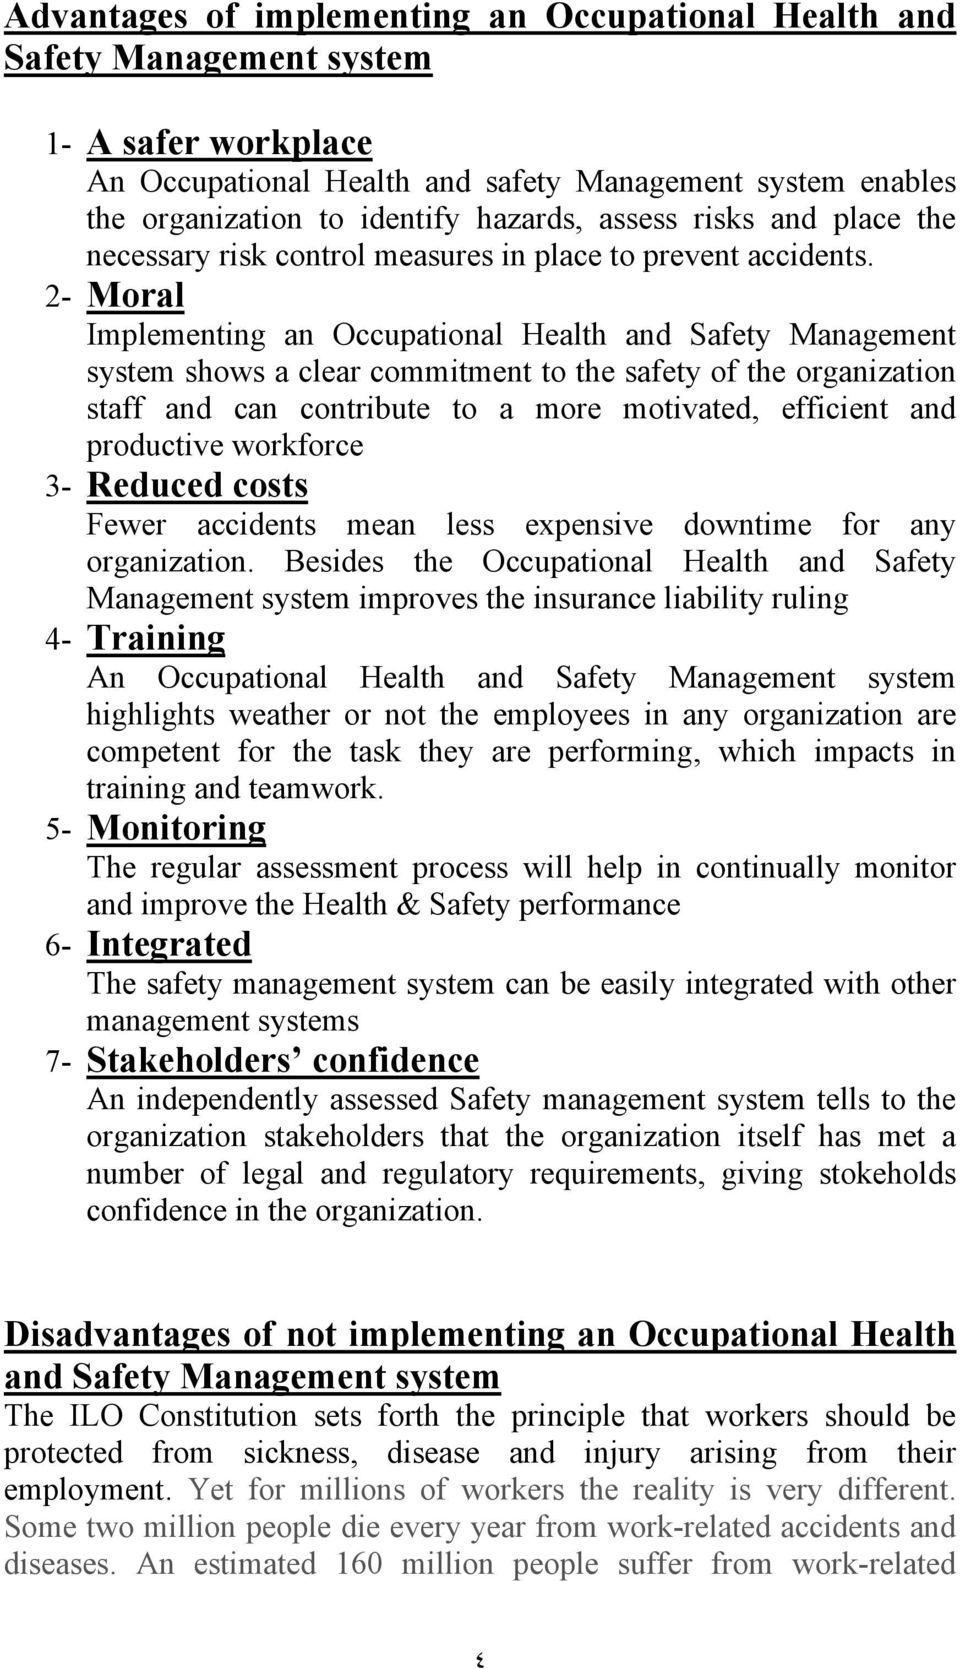 2- Moral Implementing an Occupational Health and Safety Management system shows a clear commitment to the safety of the organization staff and can contribute to a more motivated, efficient and